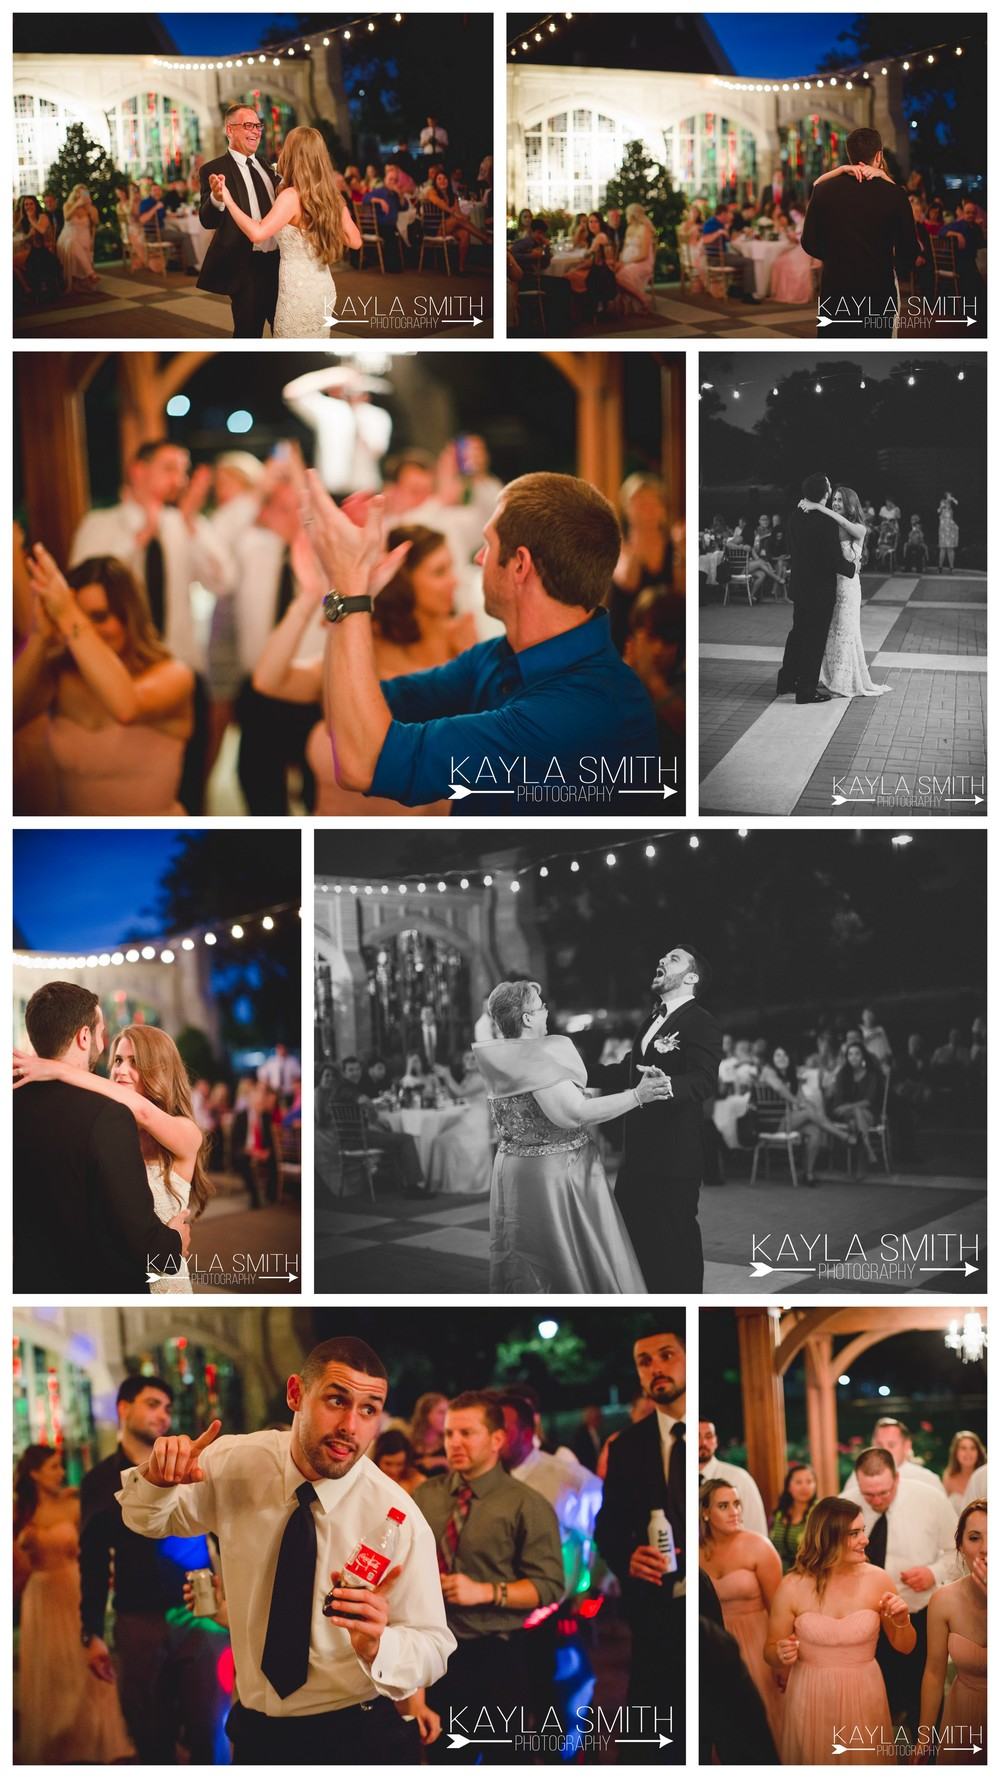 The night continued with tons and tons of dancing on the beautiful, light-strung patio with music by Be Entertained Events of Fort Worth.